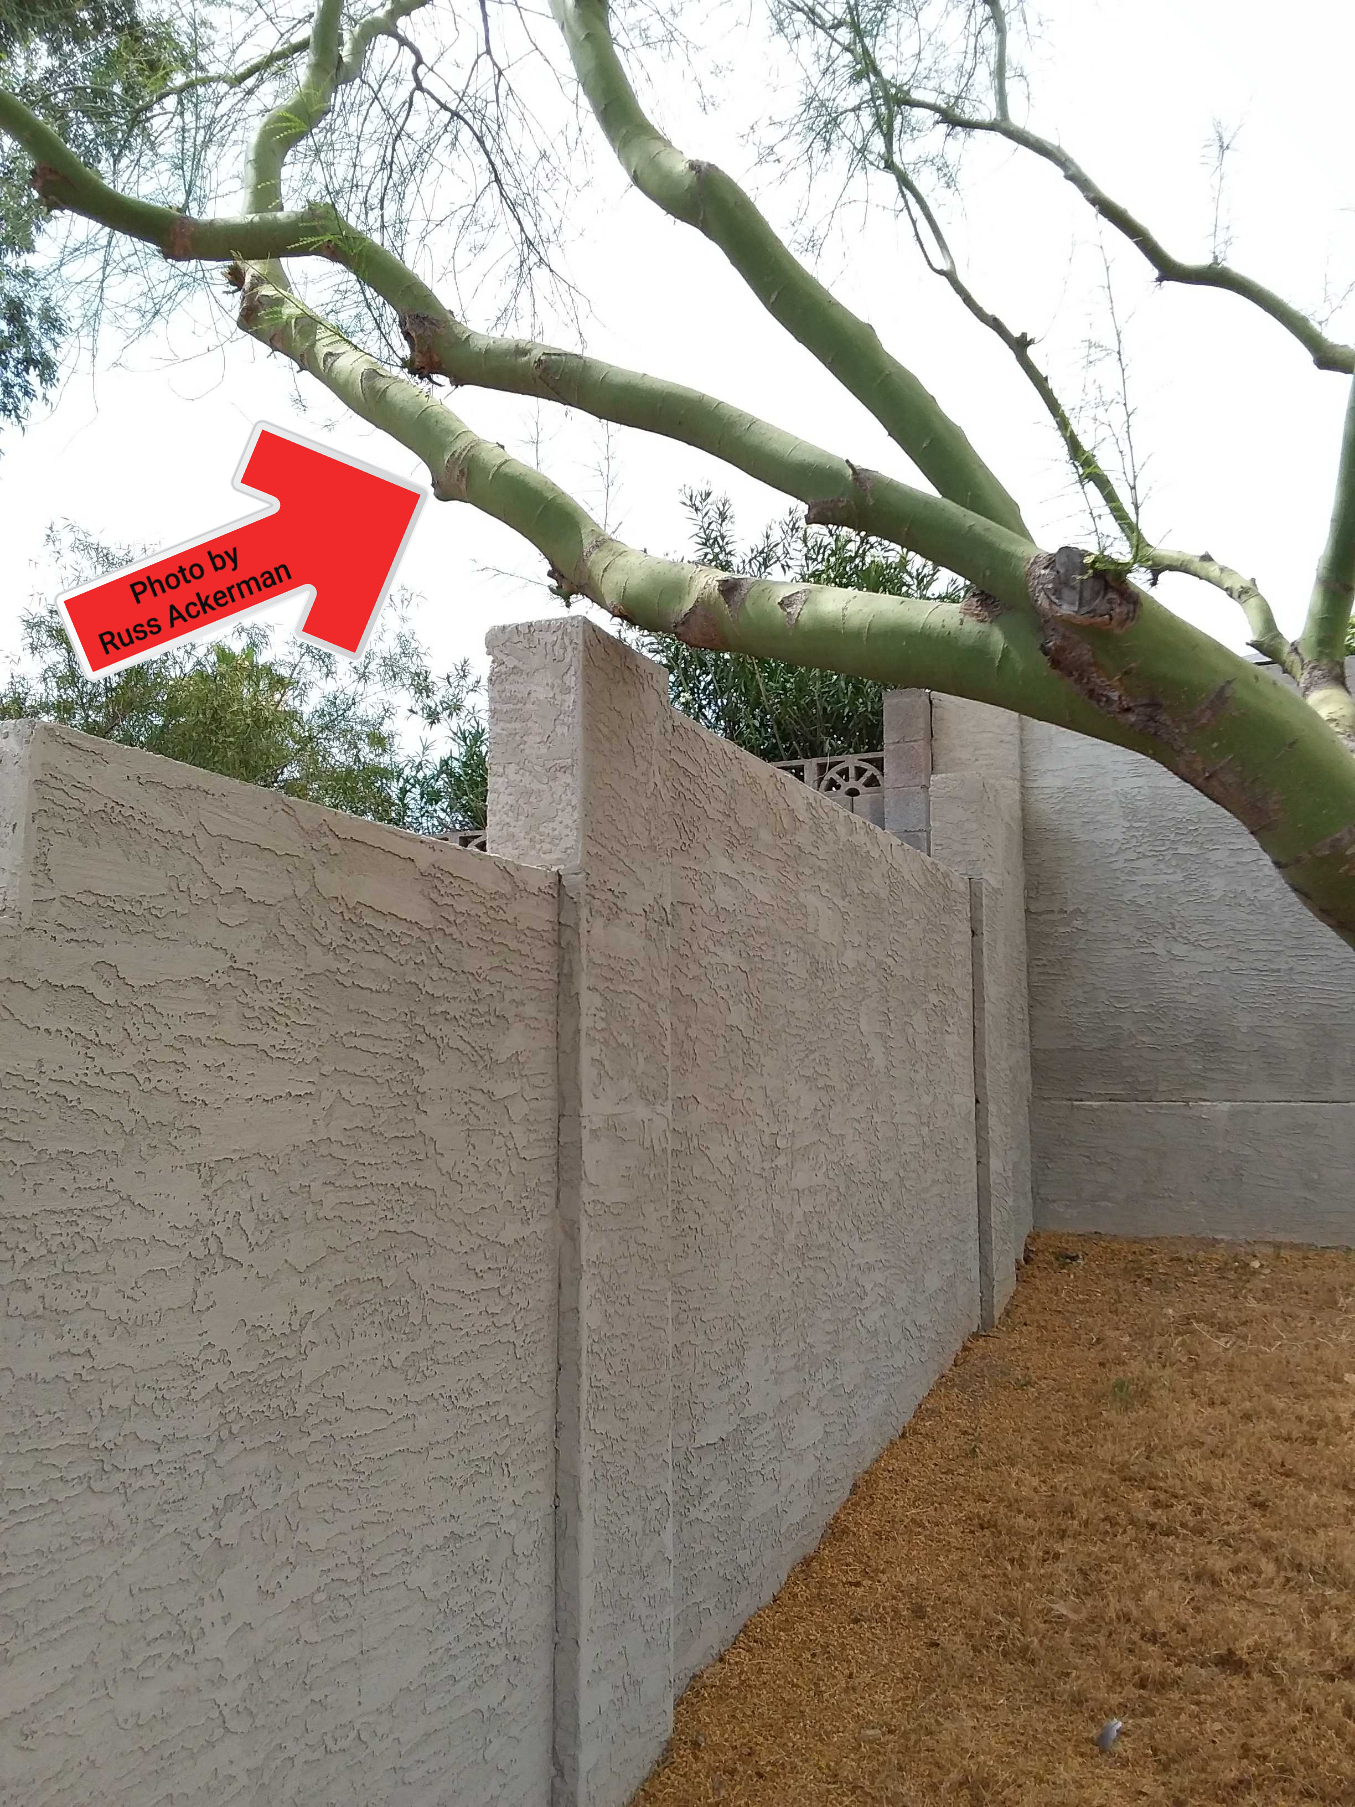 Palo Verde trees are usually the first ones to snap during summer monsoons, and that block wall will soon be damaged.